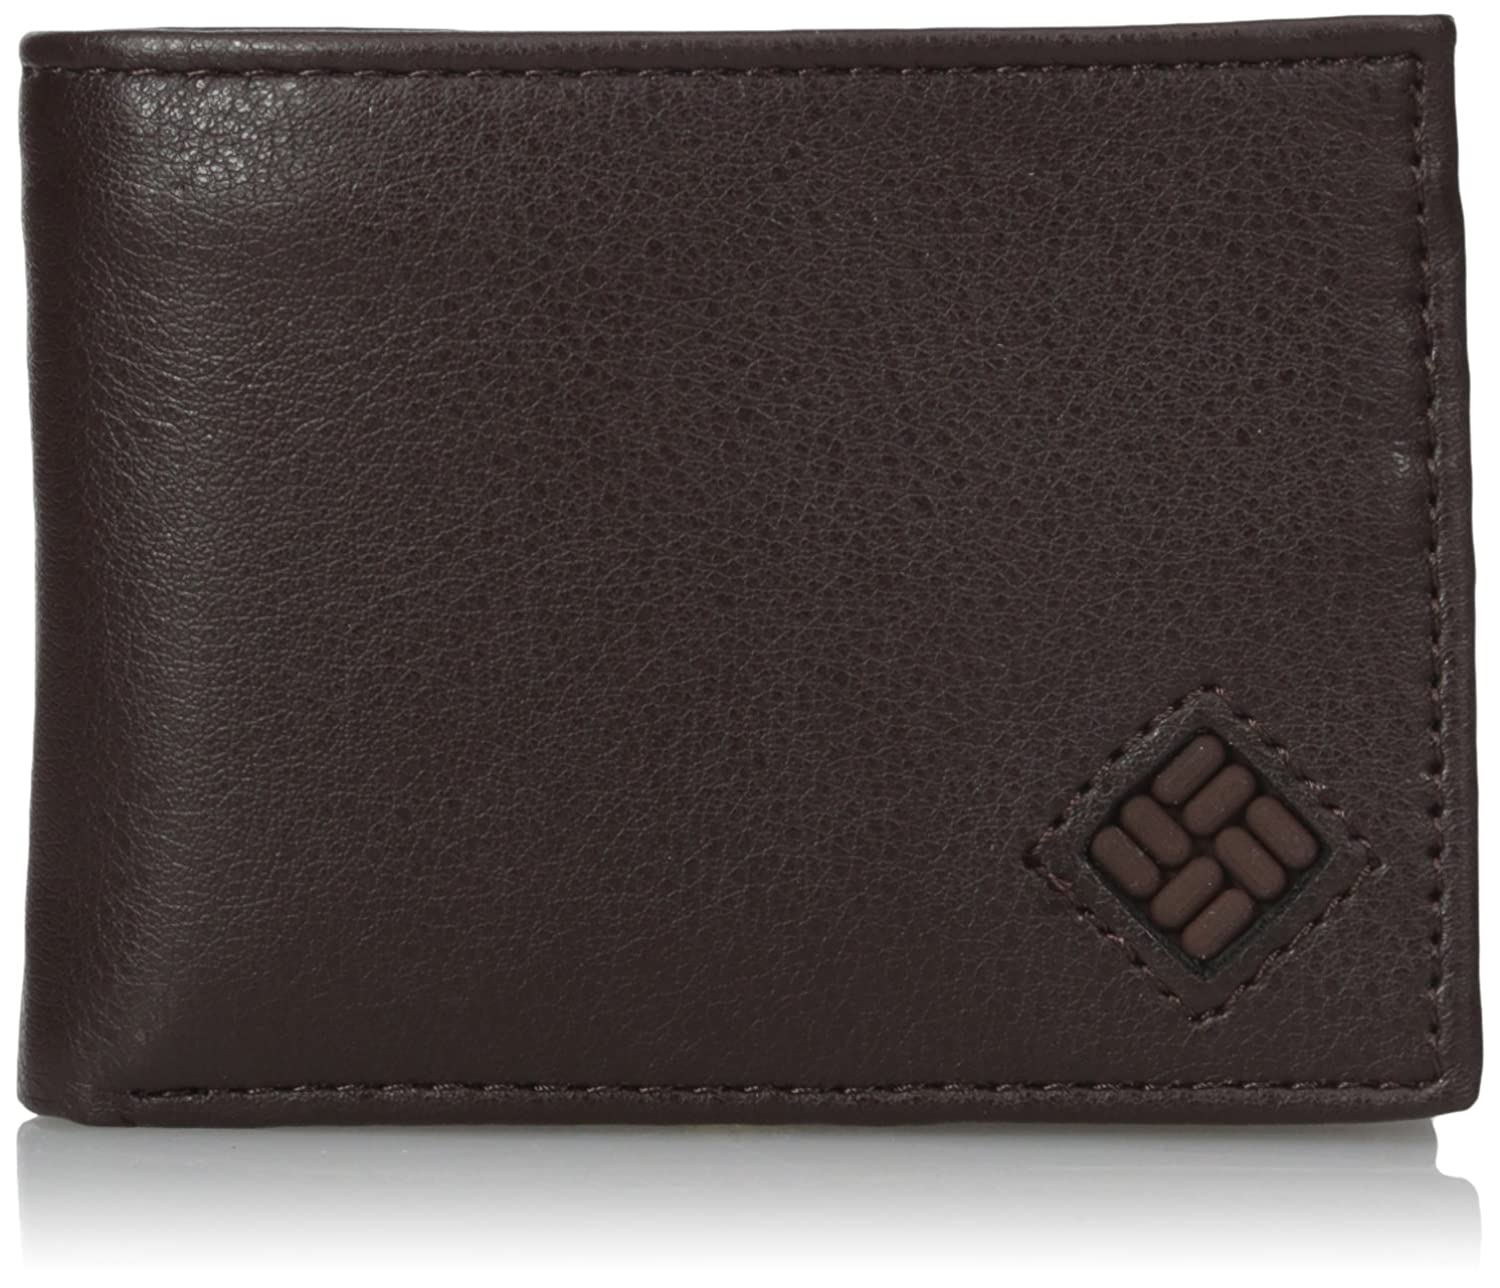 Columbia Mens Leather Extra Capacity Slimfold Wallet,Brown ...